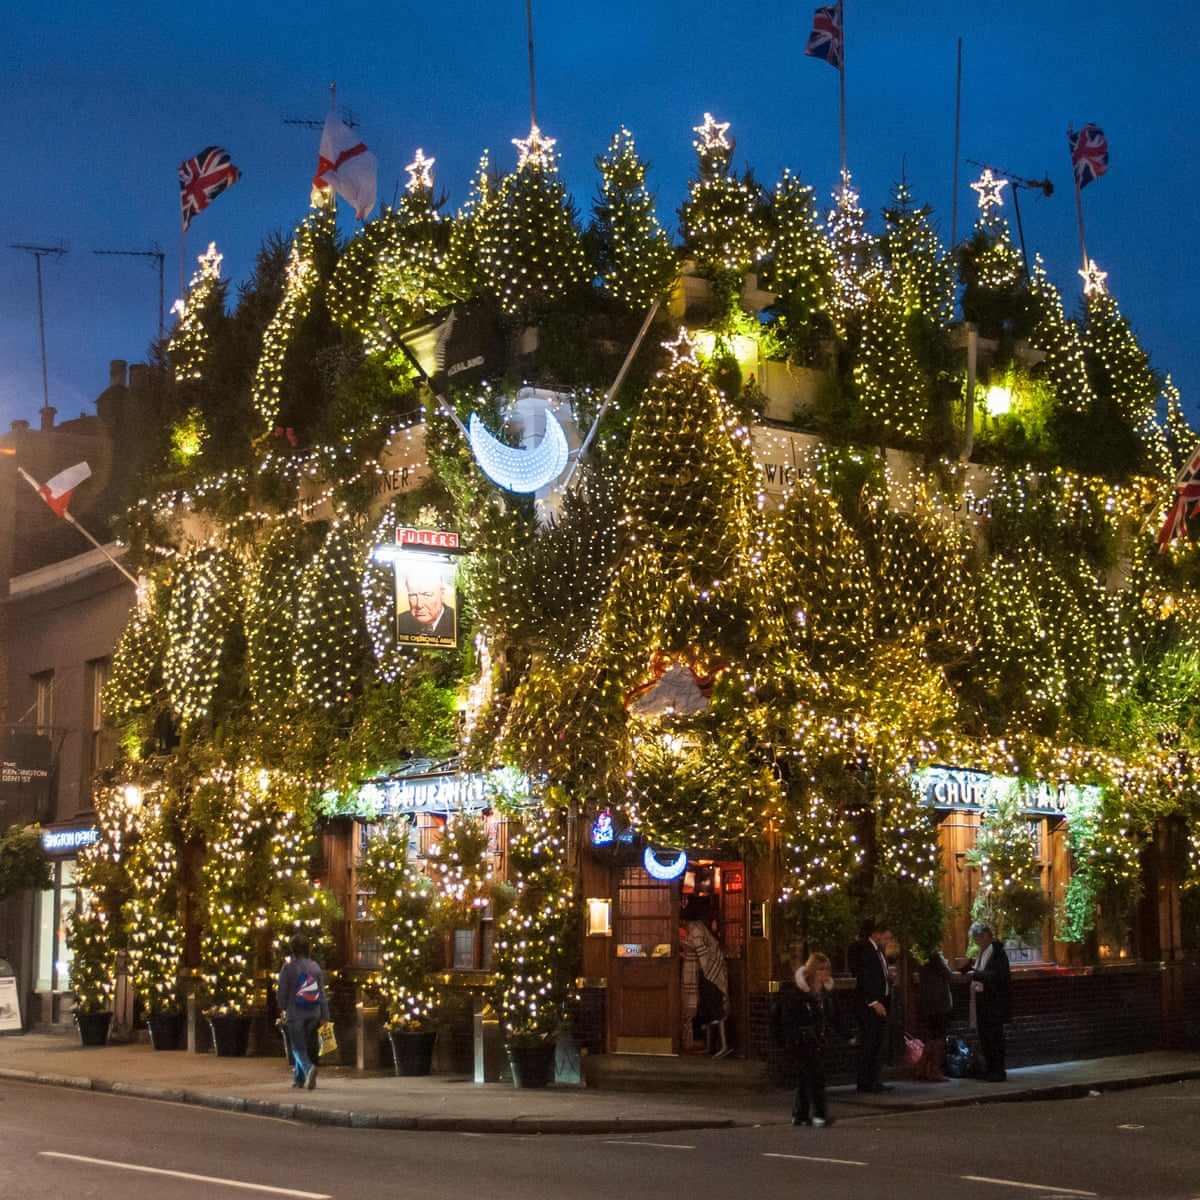 10 of the best London pubs for the Christmas season | Travel | The Guardian